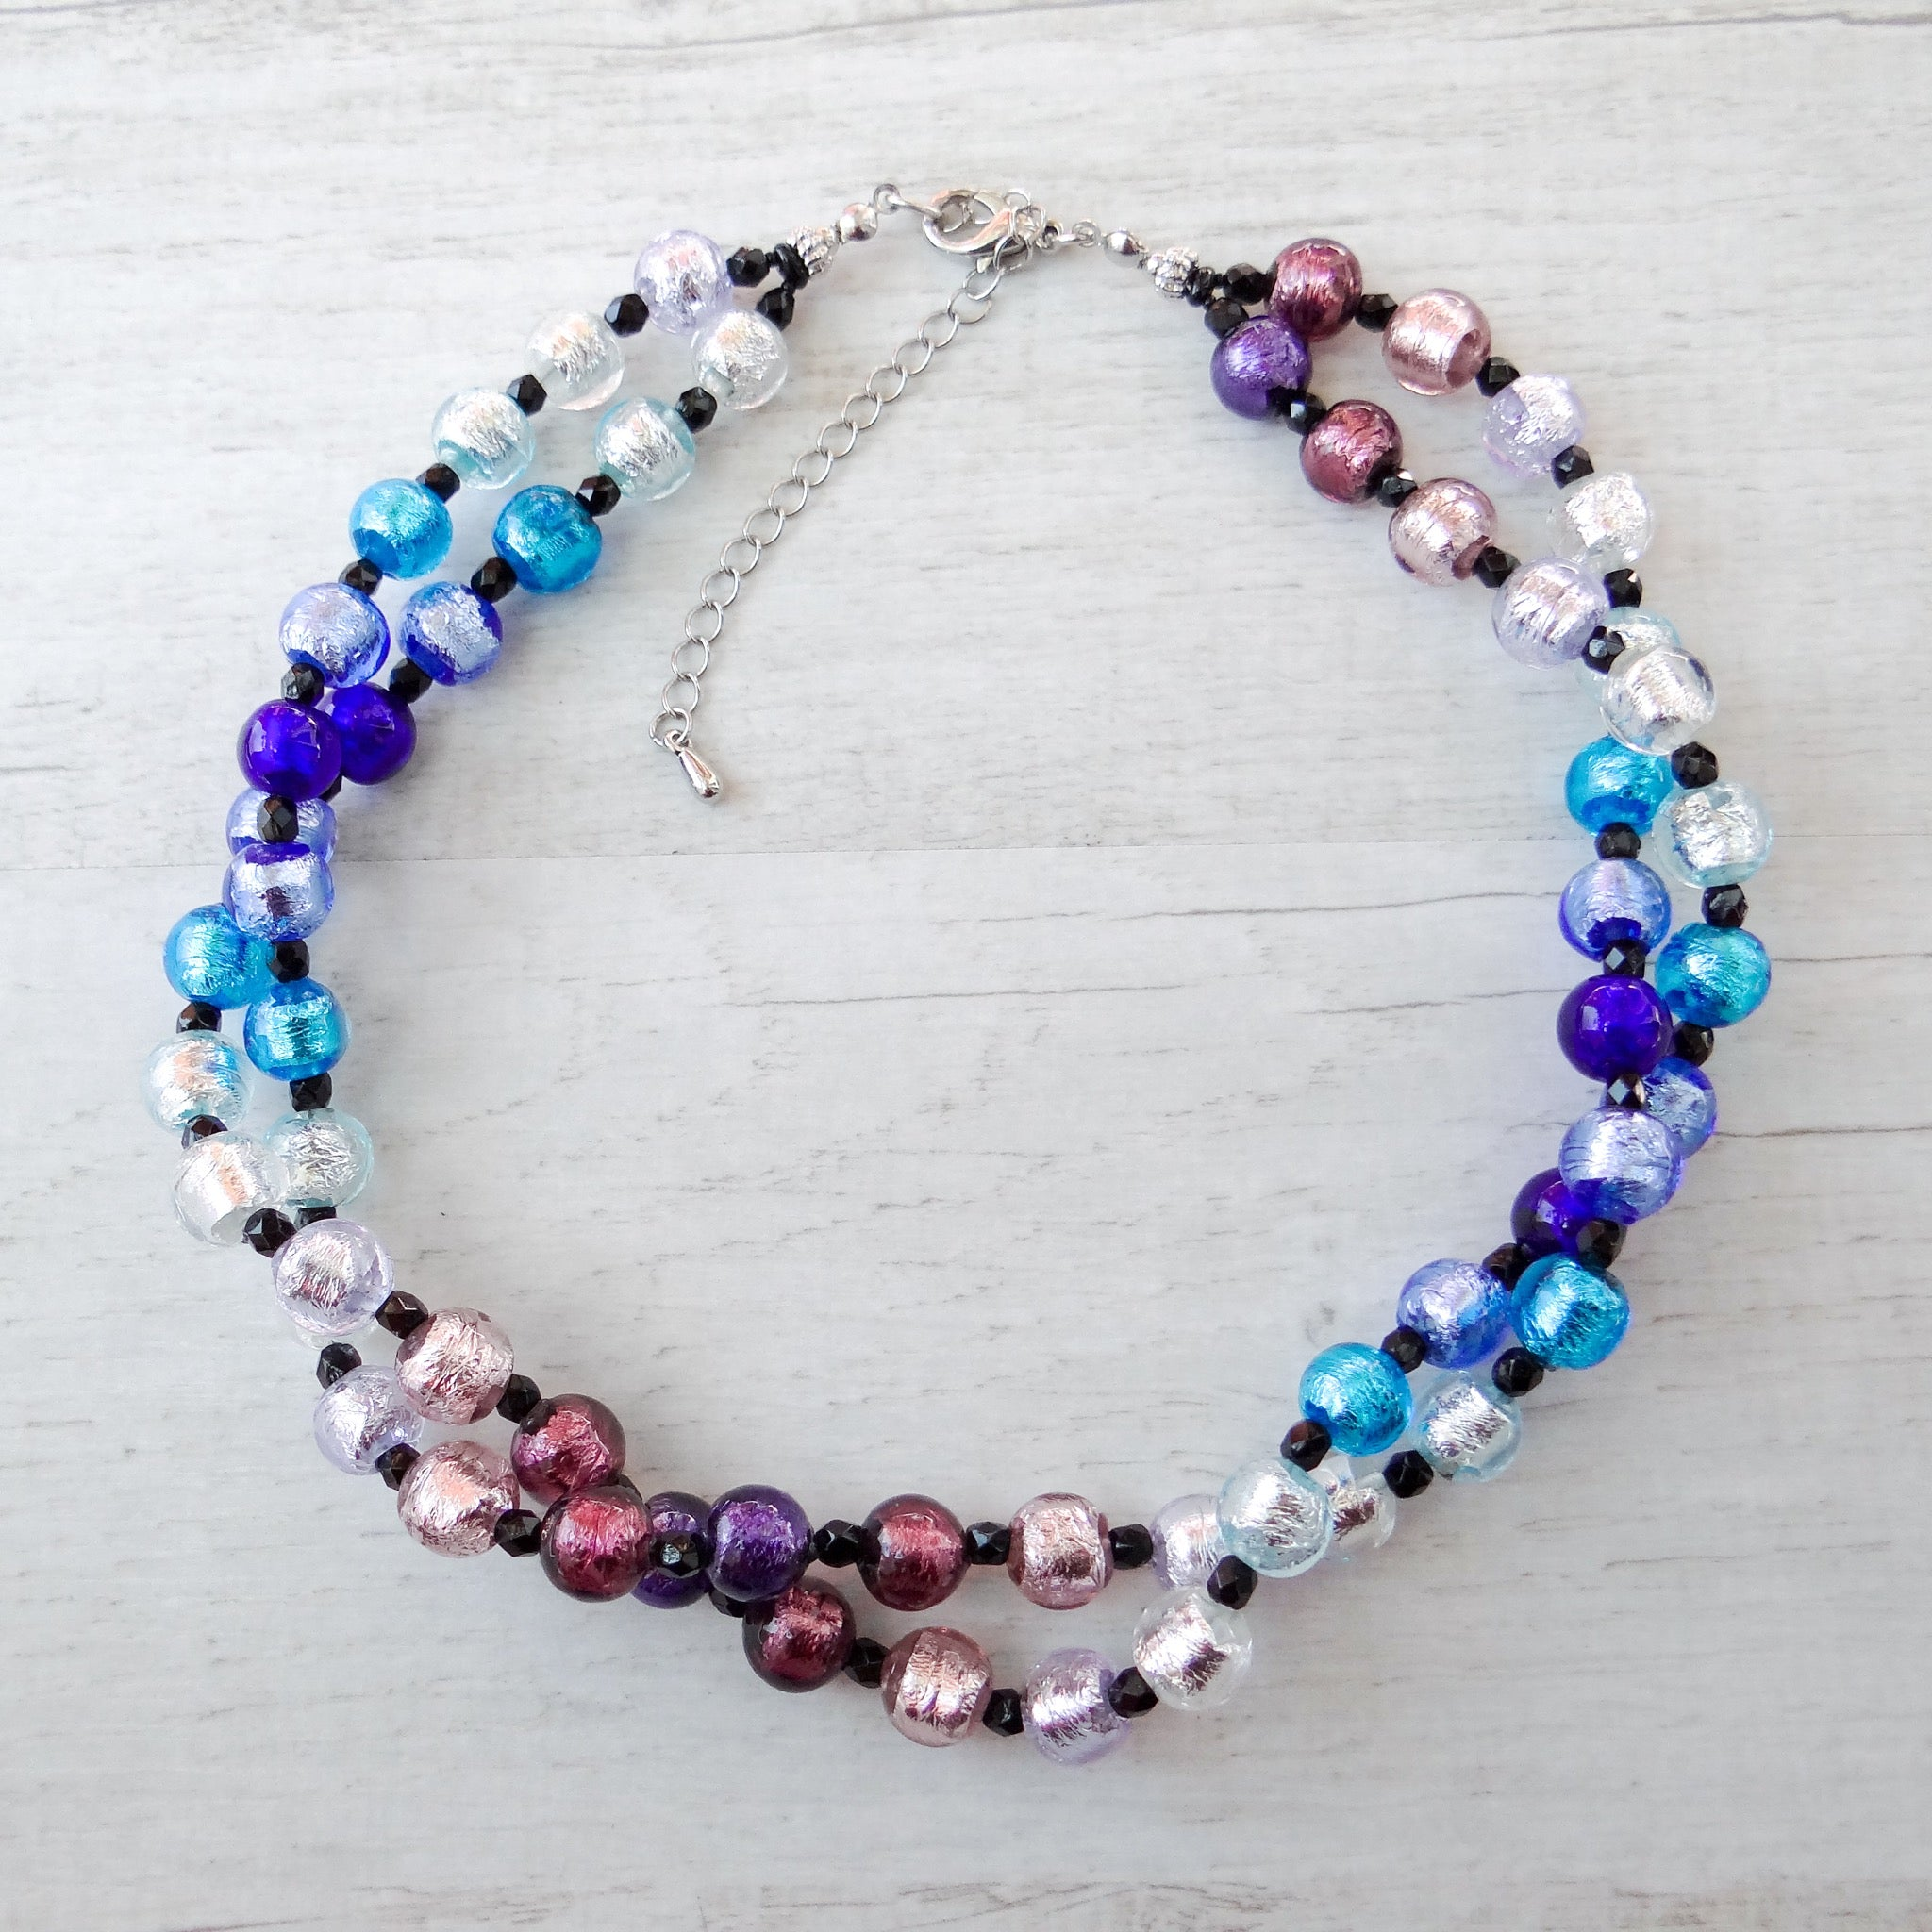 Arlechin - Blue Murano Glass Double Strand Necklace